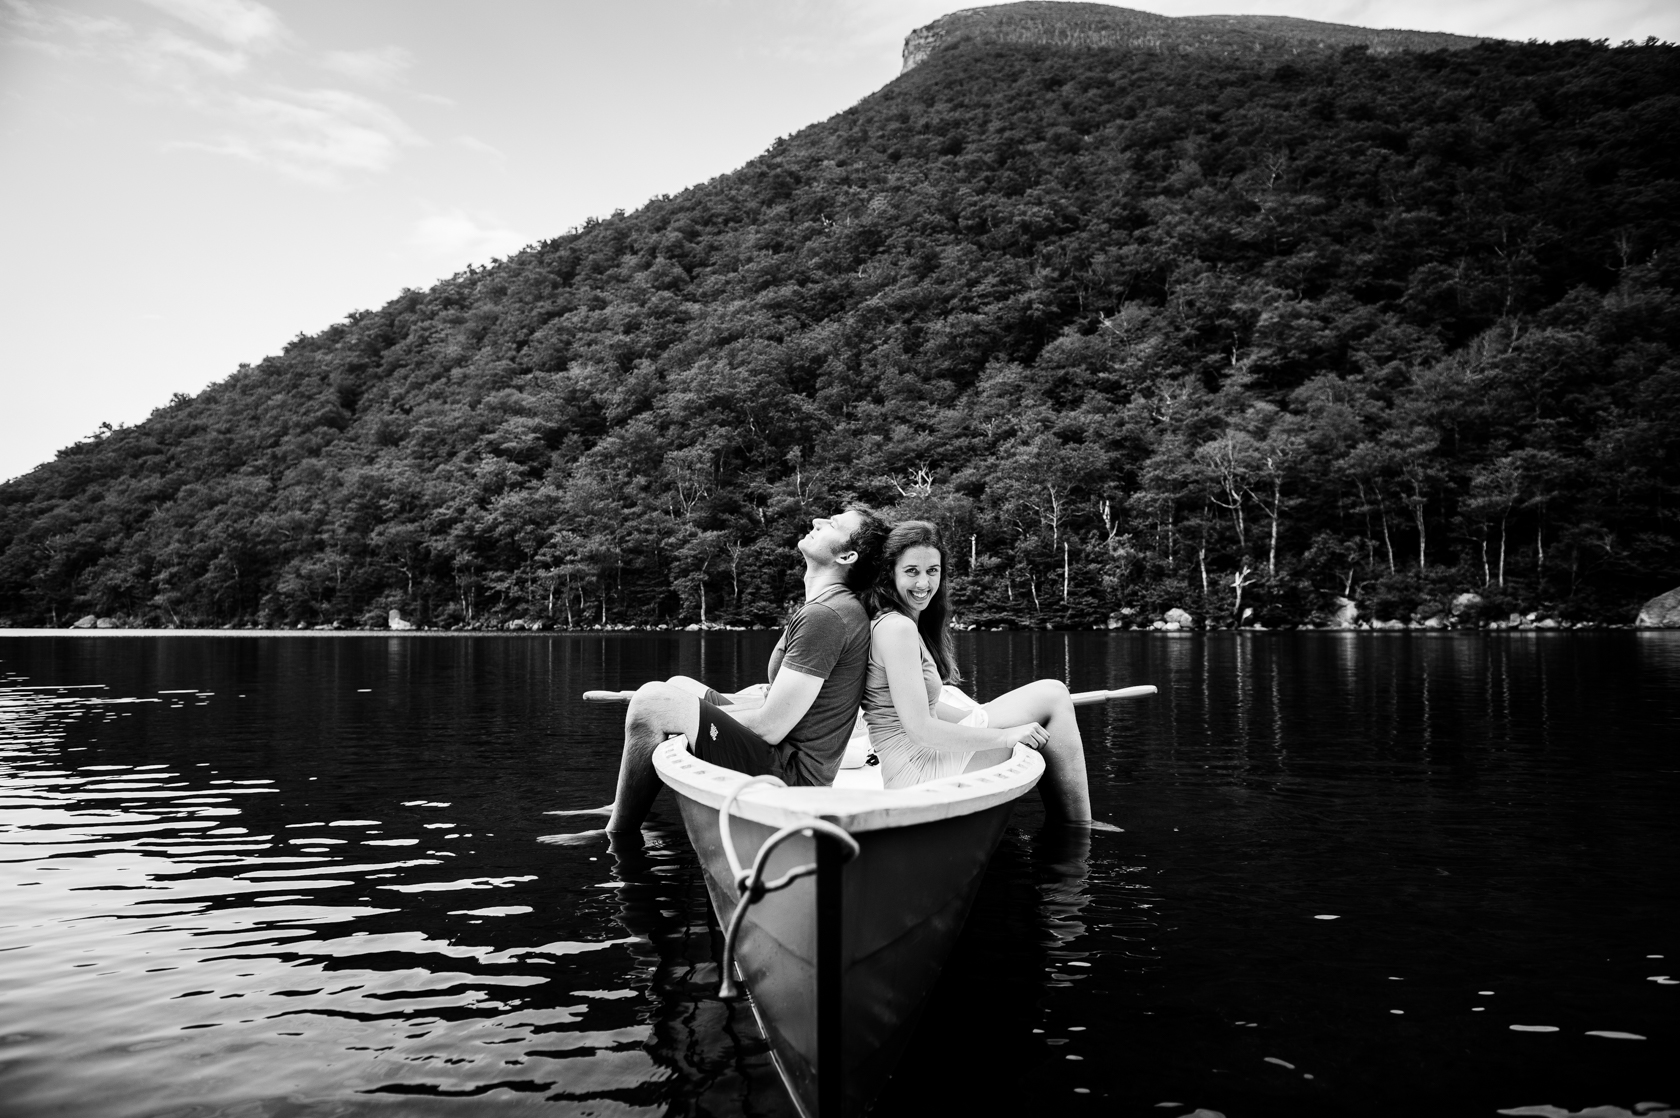 adorable couple sit back to back on their blue row boat